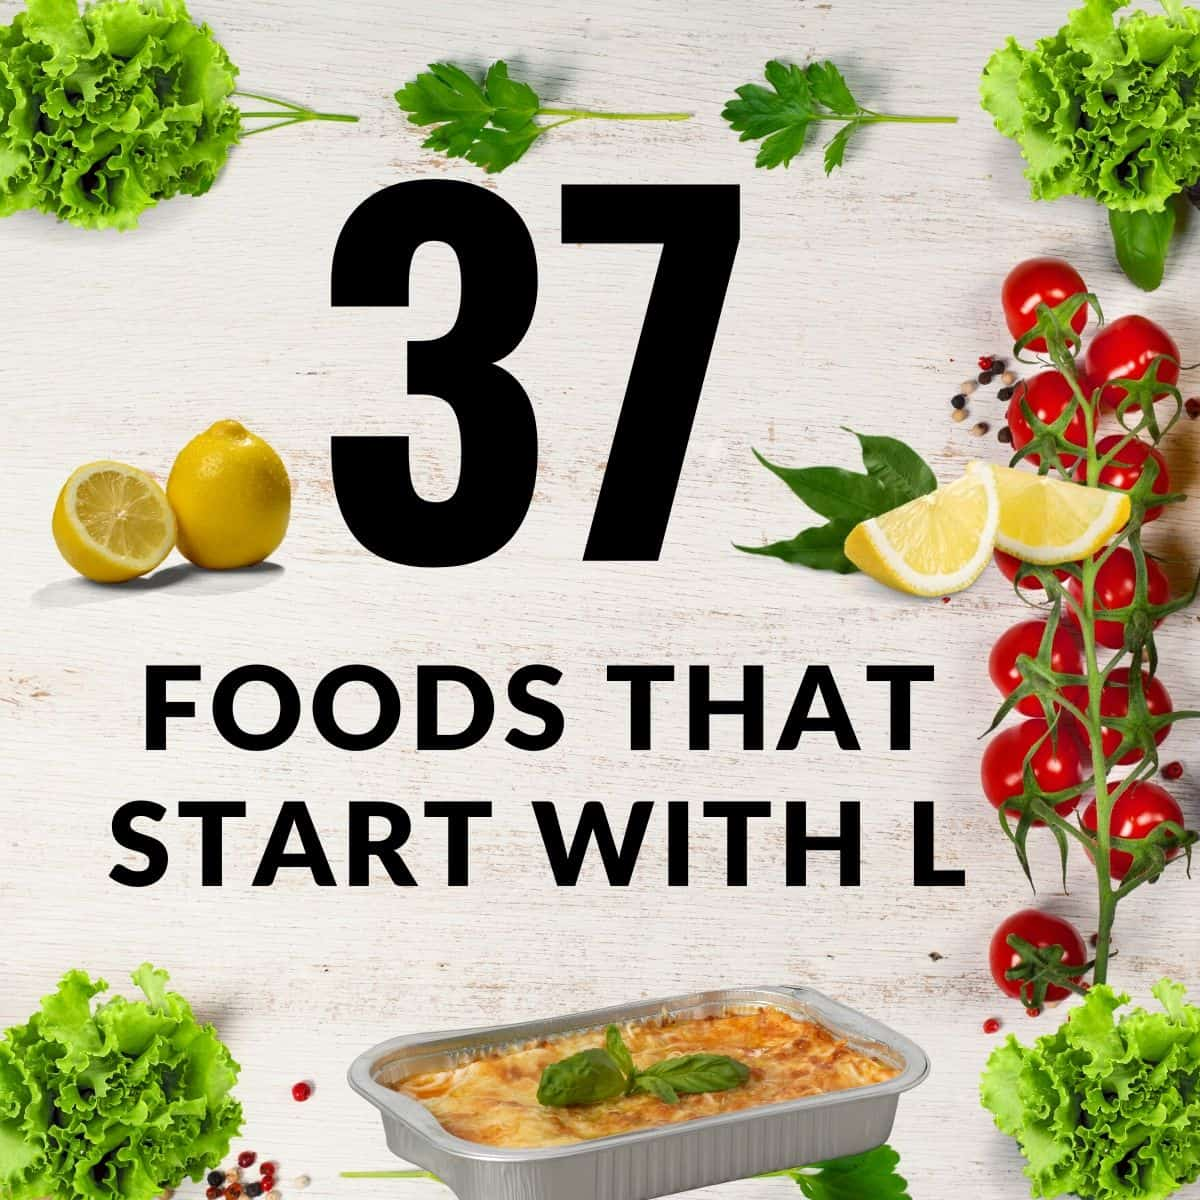 diet food starting with i